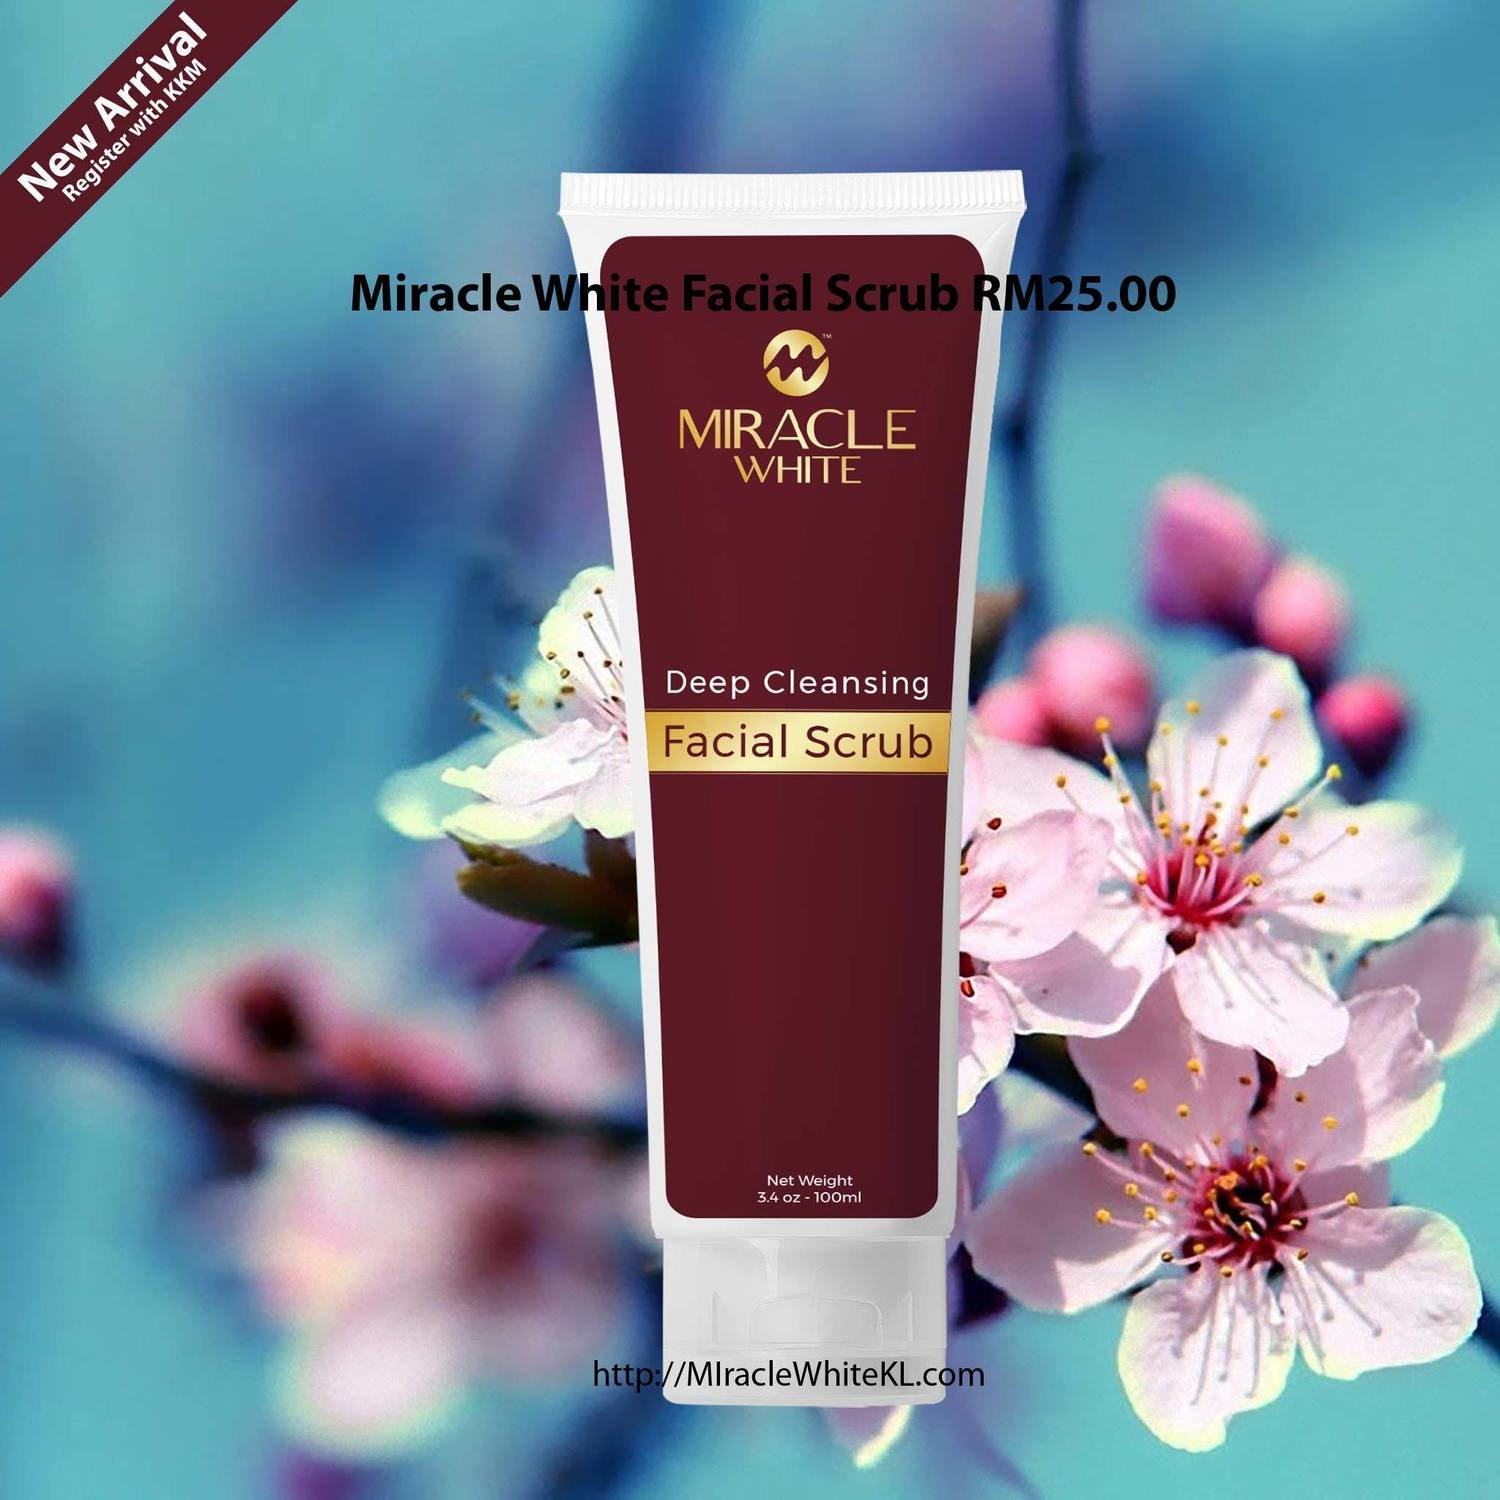 Miracle White Facial Scrub